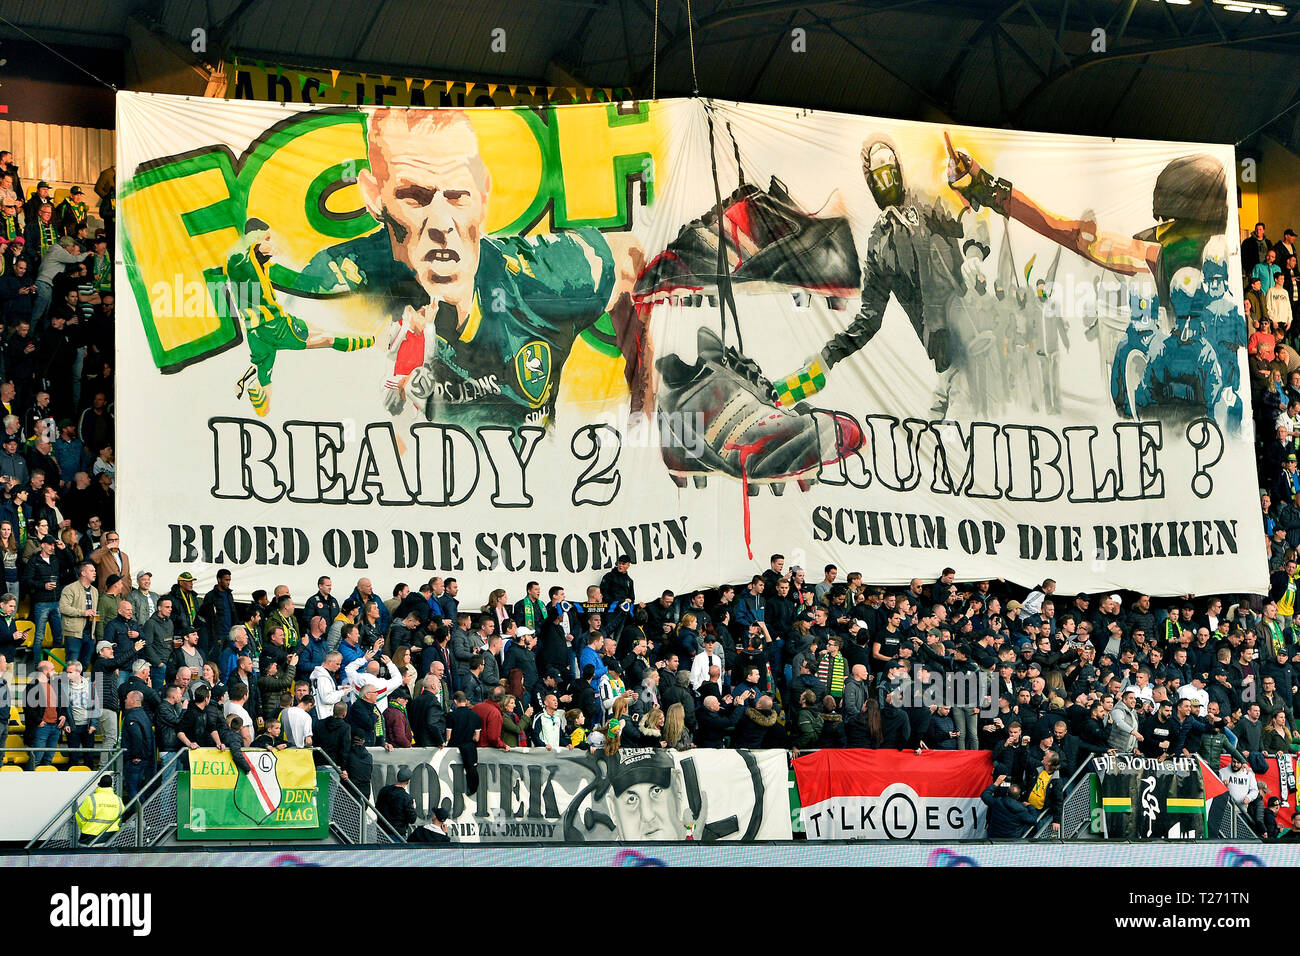 Den Haag 30 03 2019 Cars Jeans Stadion Season 2018 2019 Banner Of Ado Den Haag Supporters Before The Match Ado Den Haag Vitesse Stock Photo Alamy